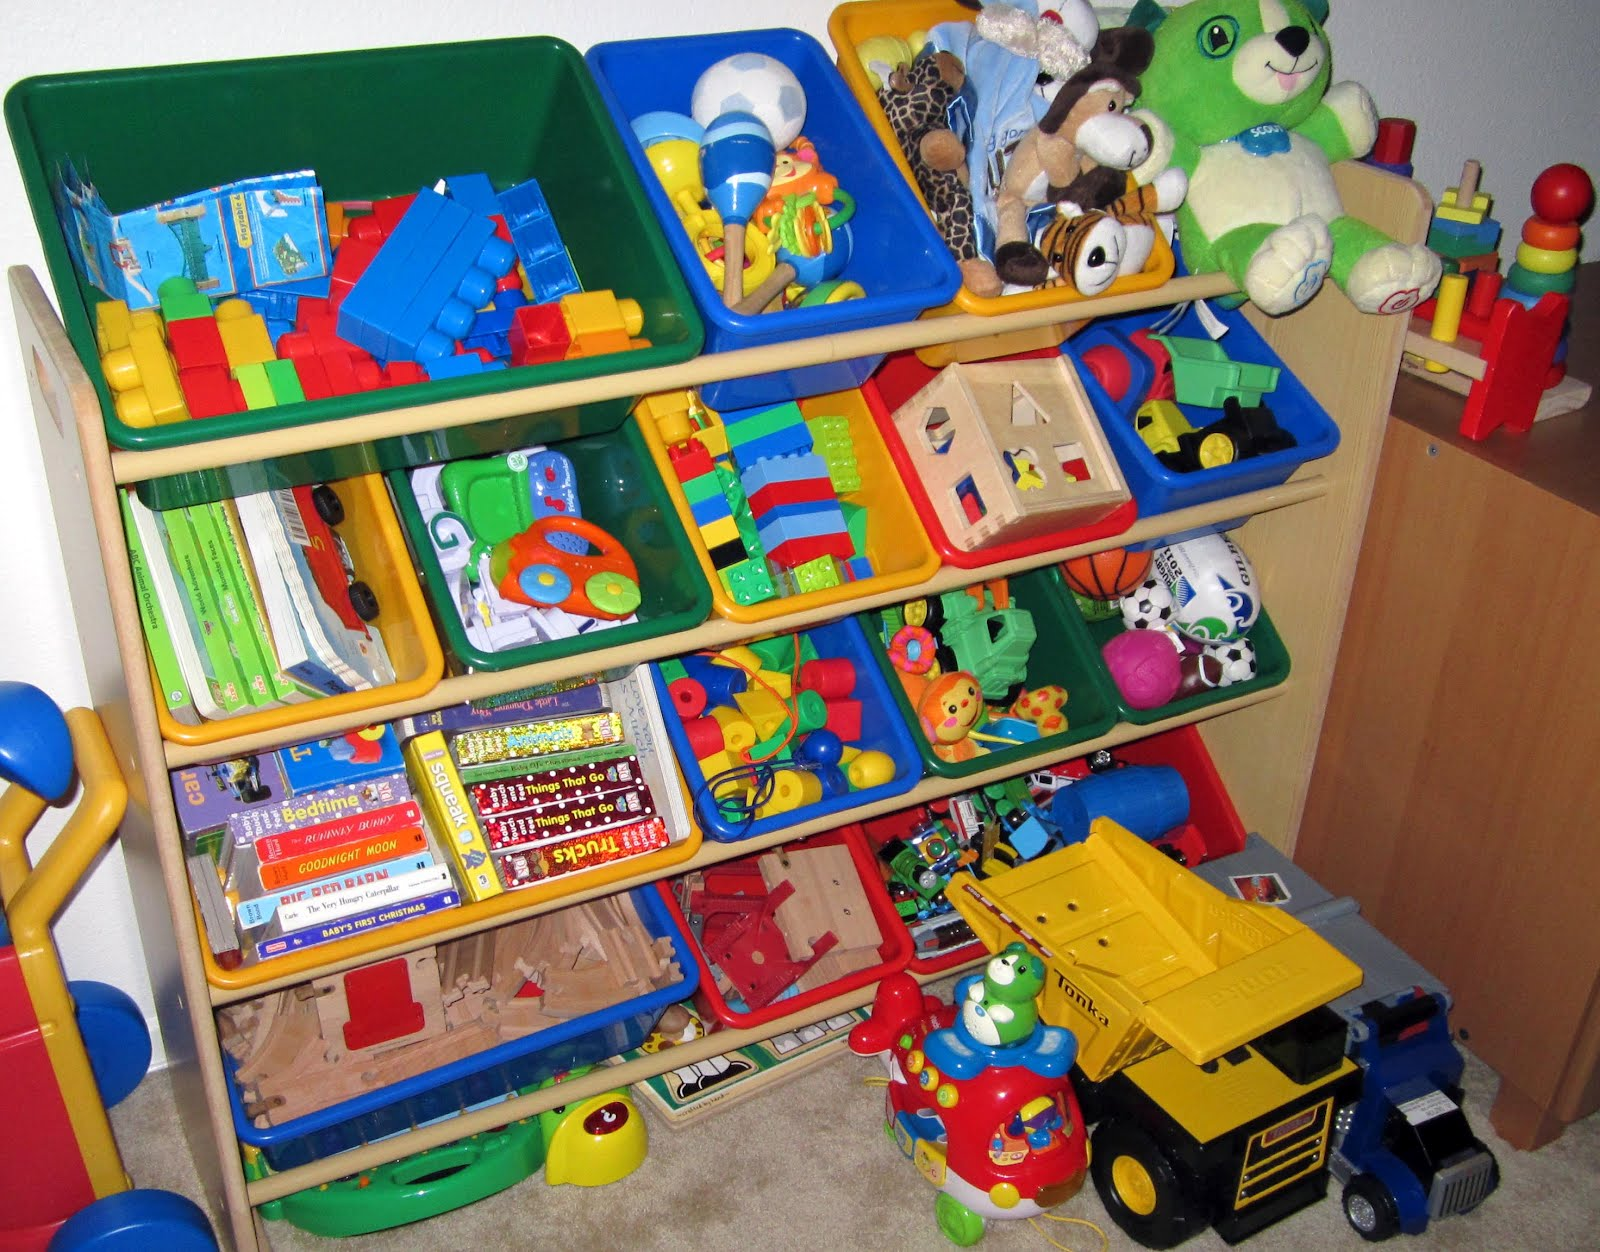 Day Care Toys : Just the library keeper stealth how un noticed can one